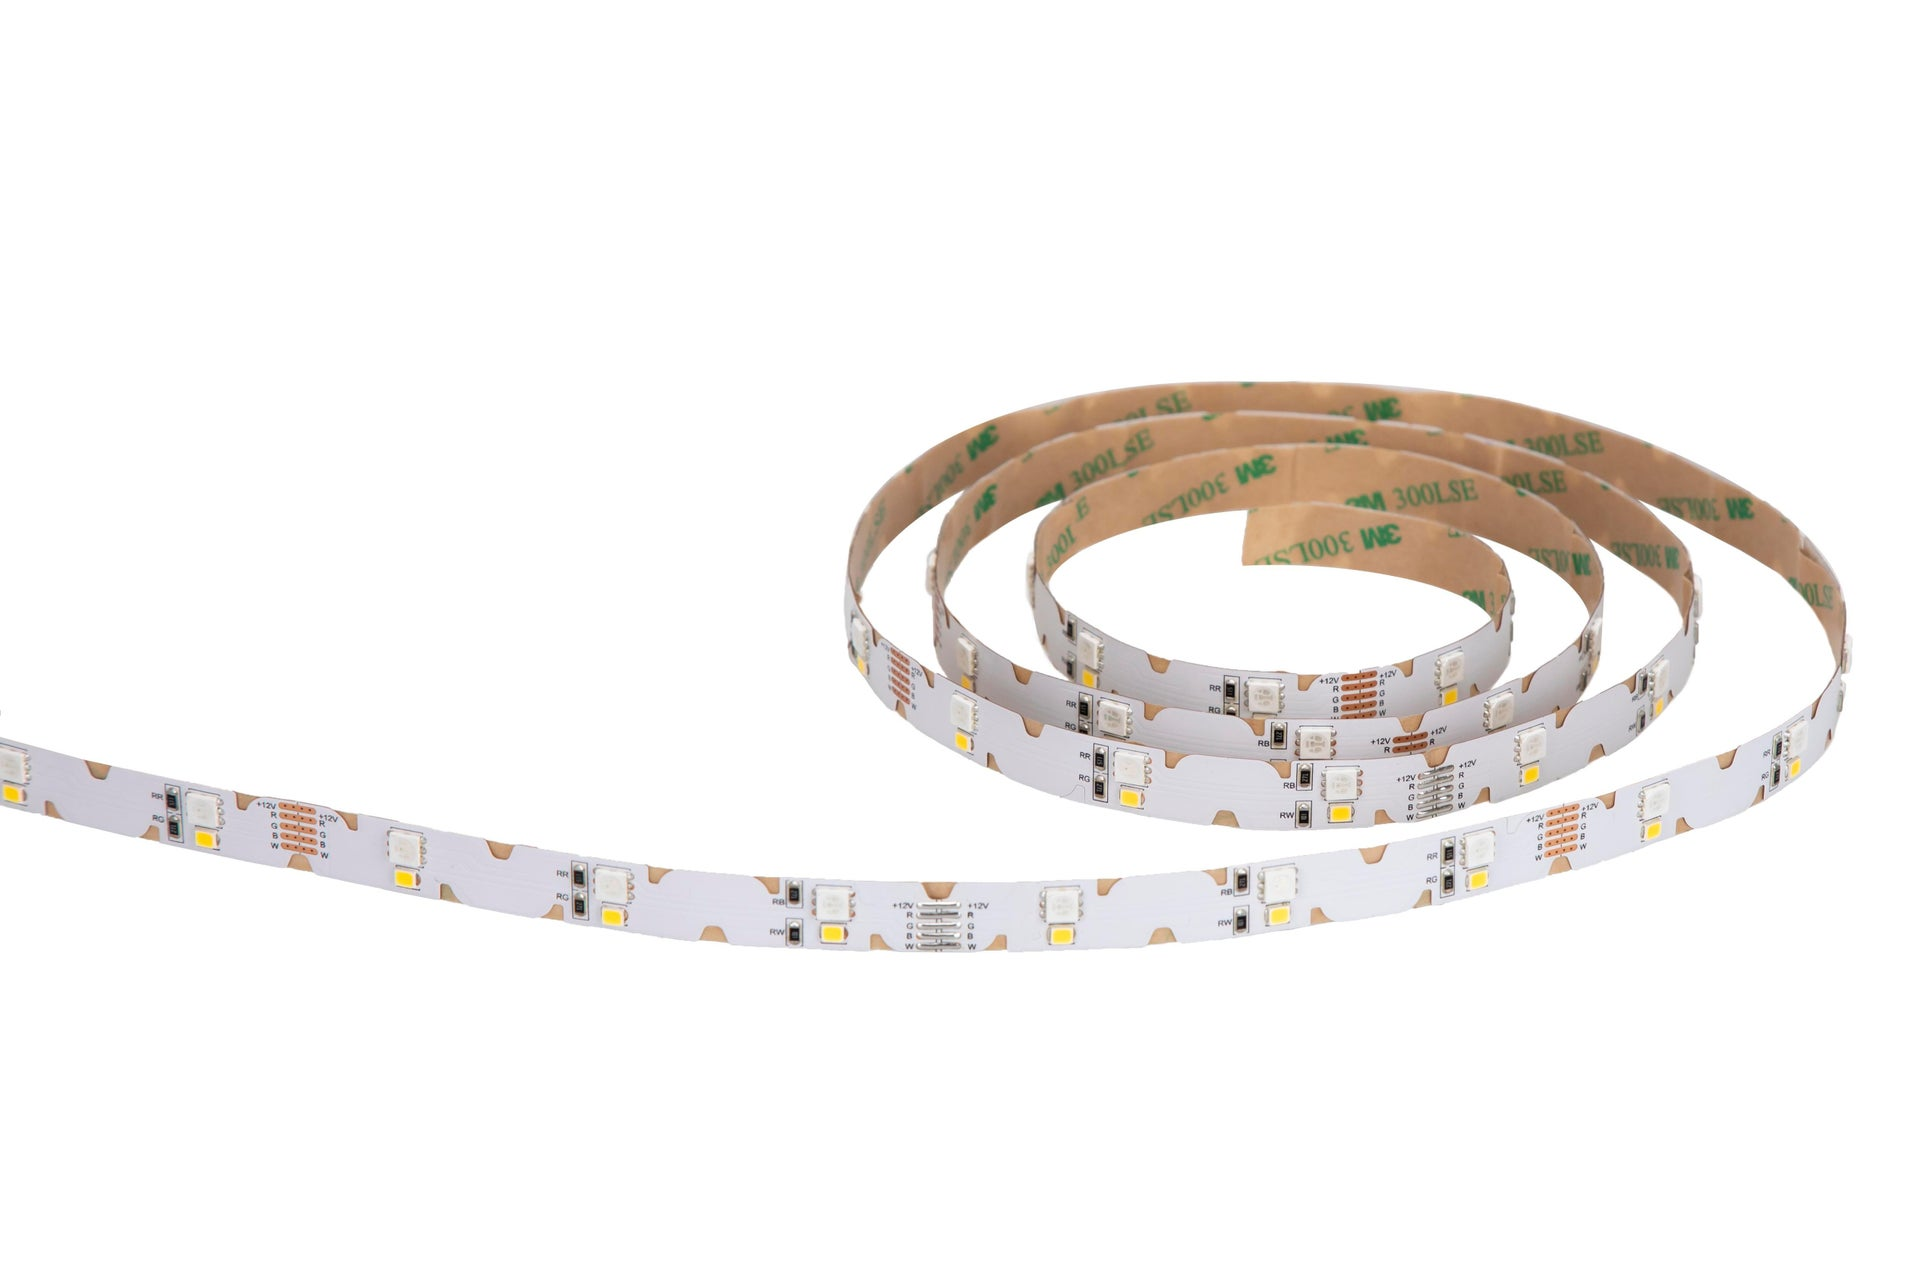 Striscia led Movaled 5m luce colore cangiante<multisep/>bianco 240LM IP20 INSPIRE - 13